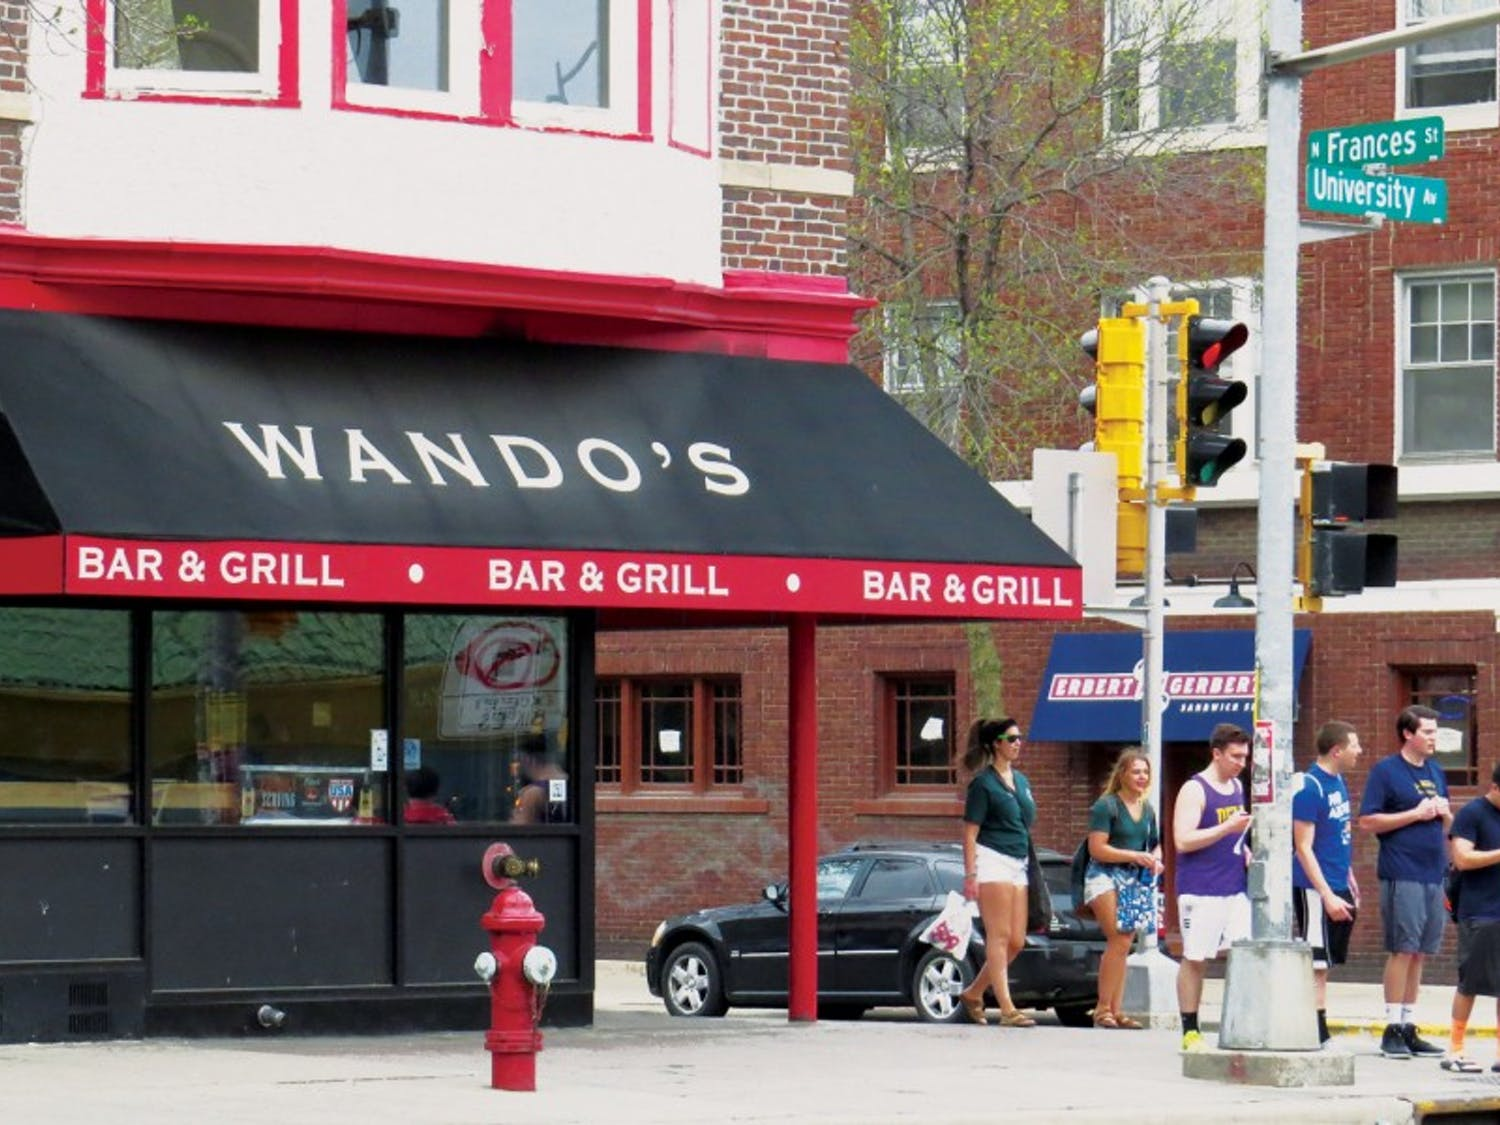 Wando's Bar & Grill filters hip-hop music, along with several other bars in Madison.